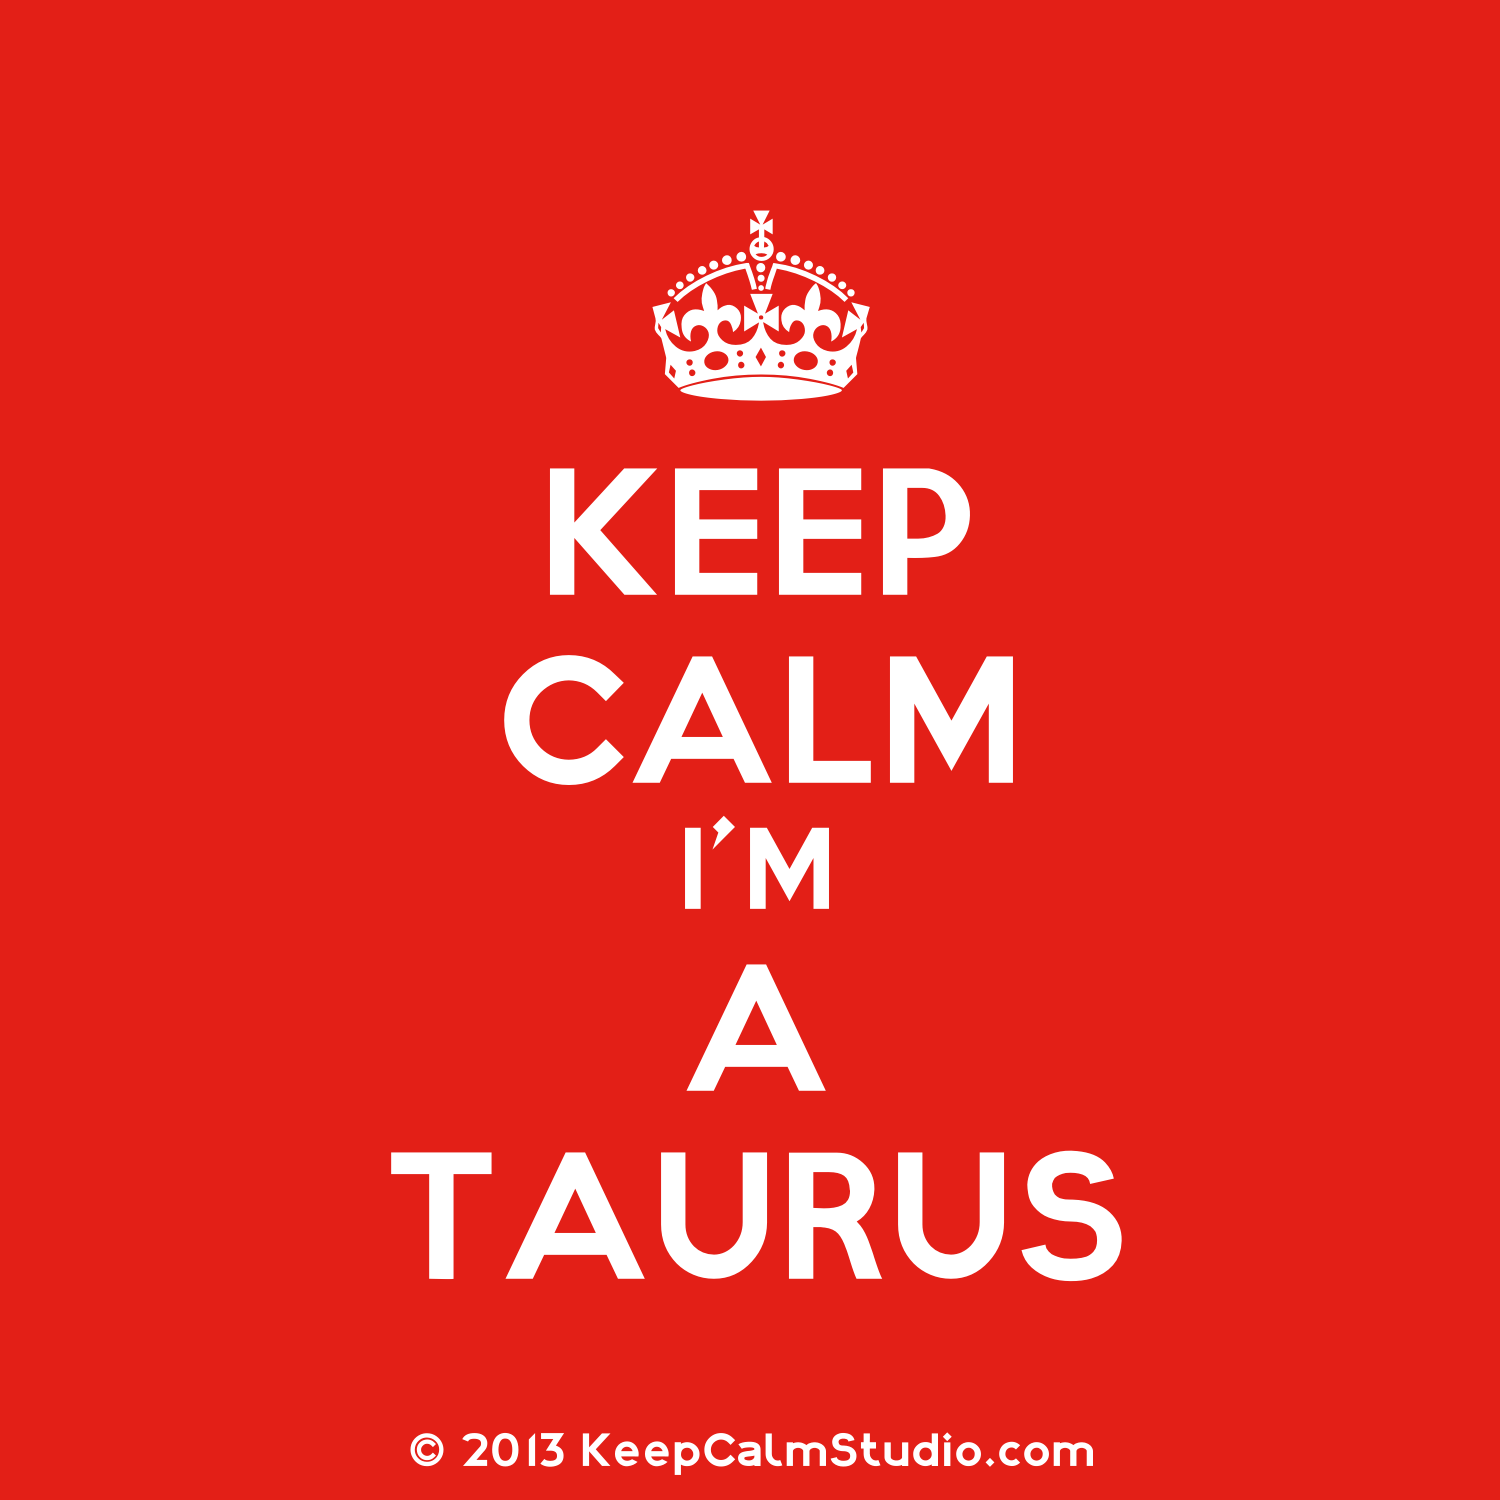 Visit Keen For Your Daily Taurus Horoscope Keenpsychics